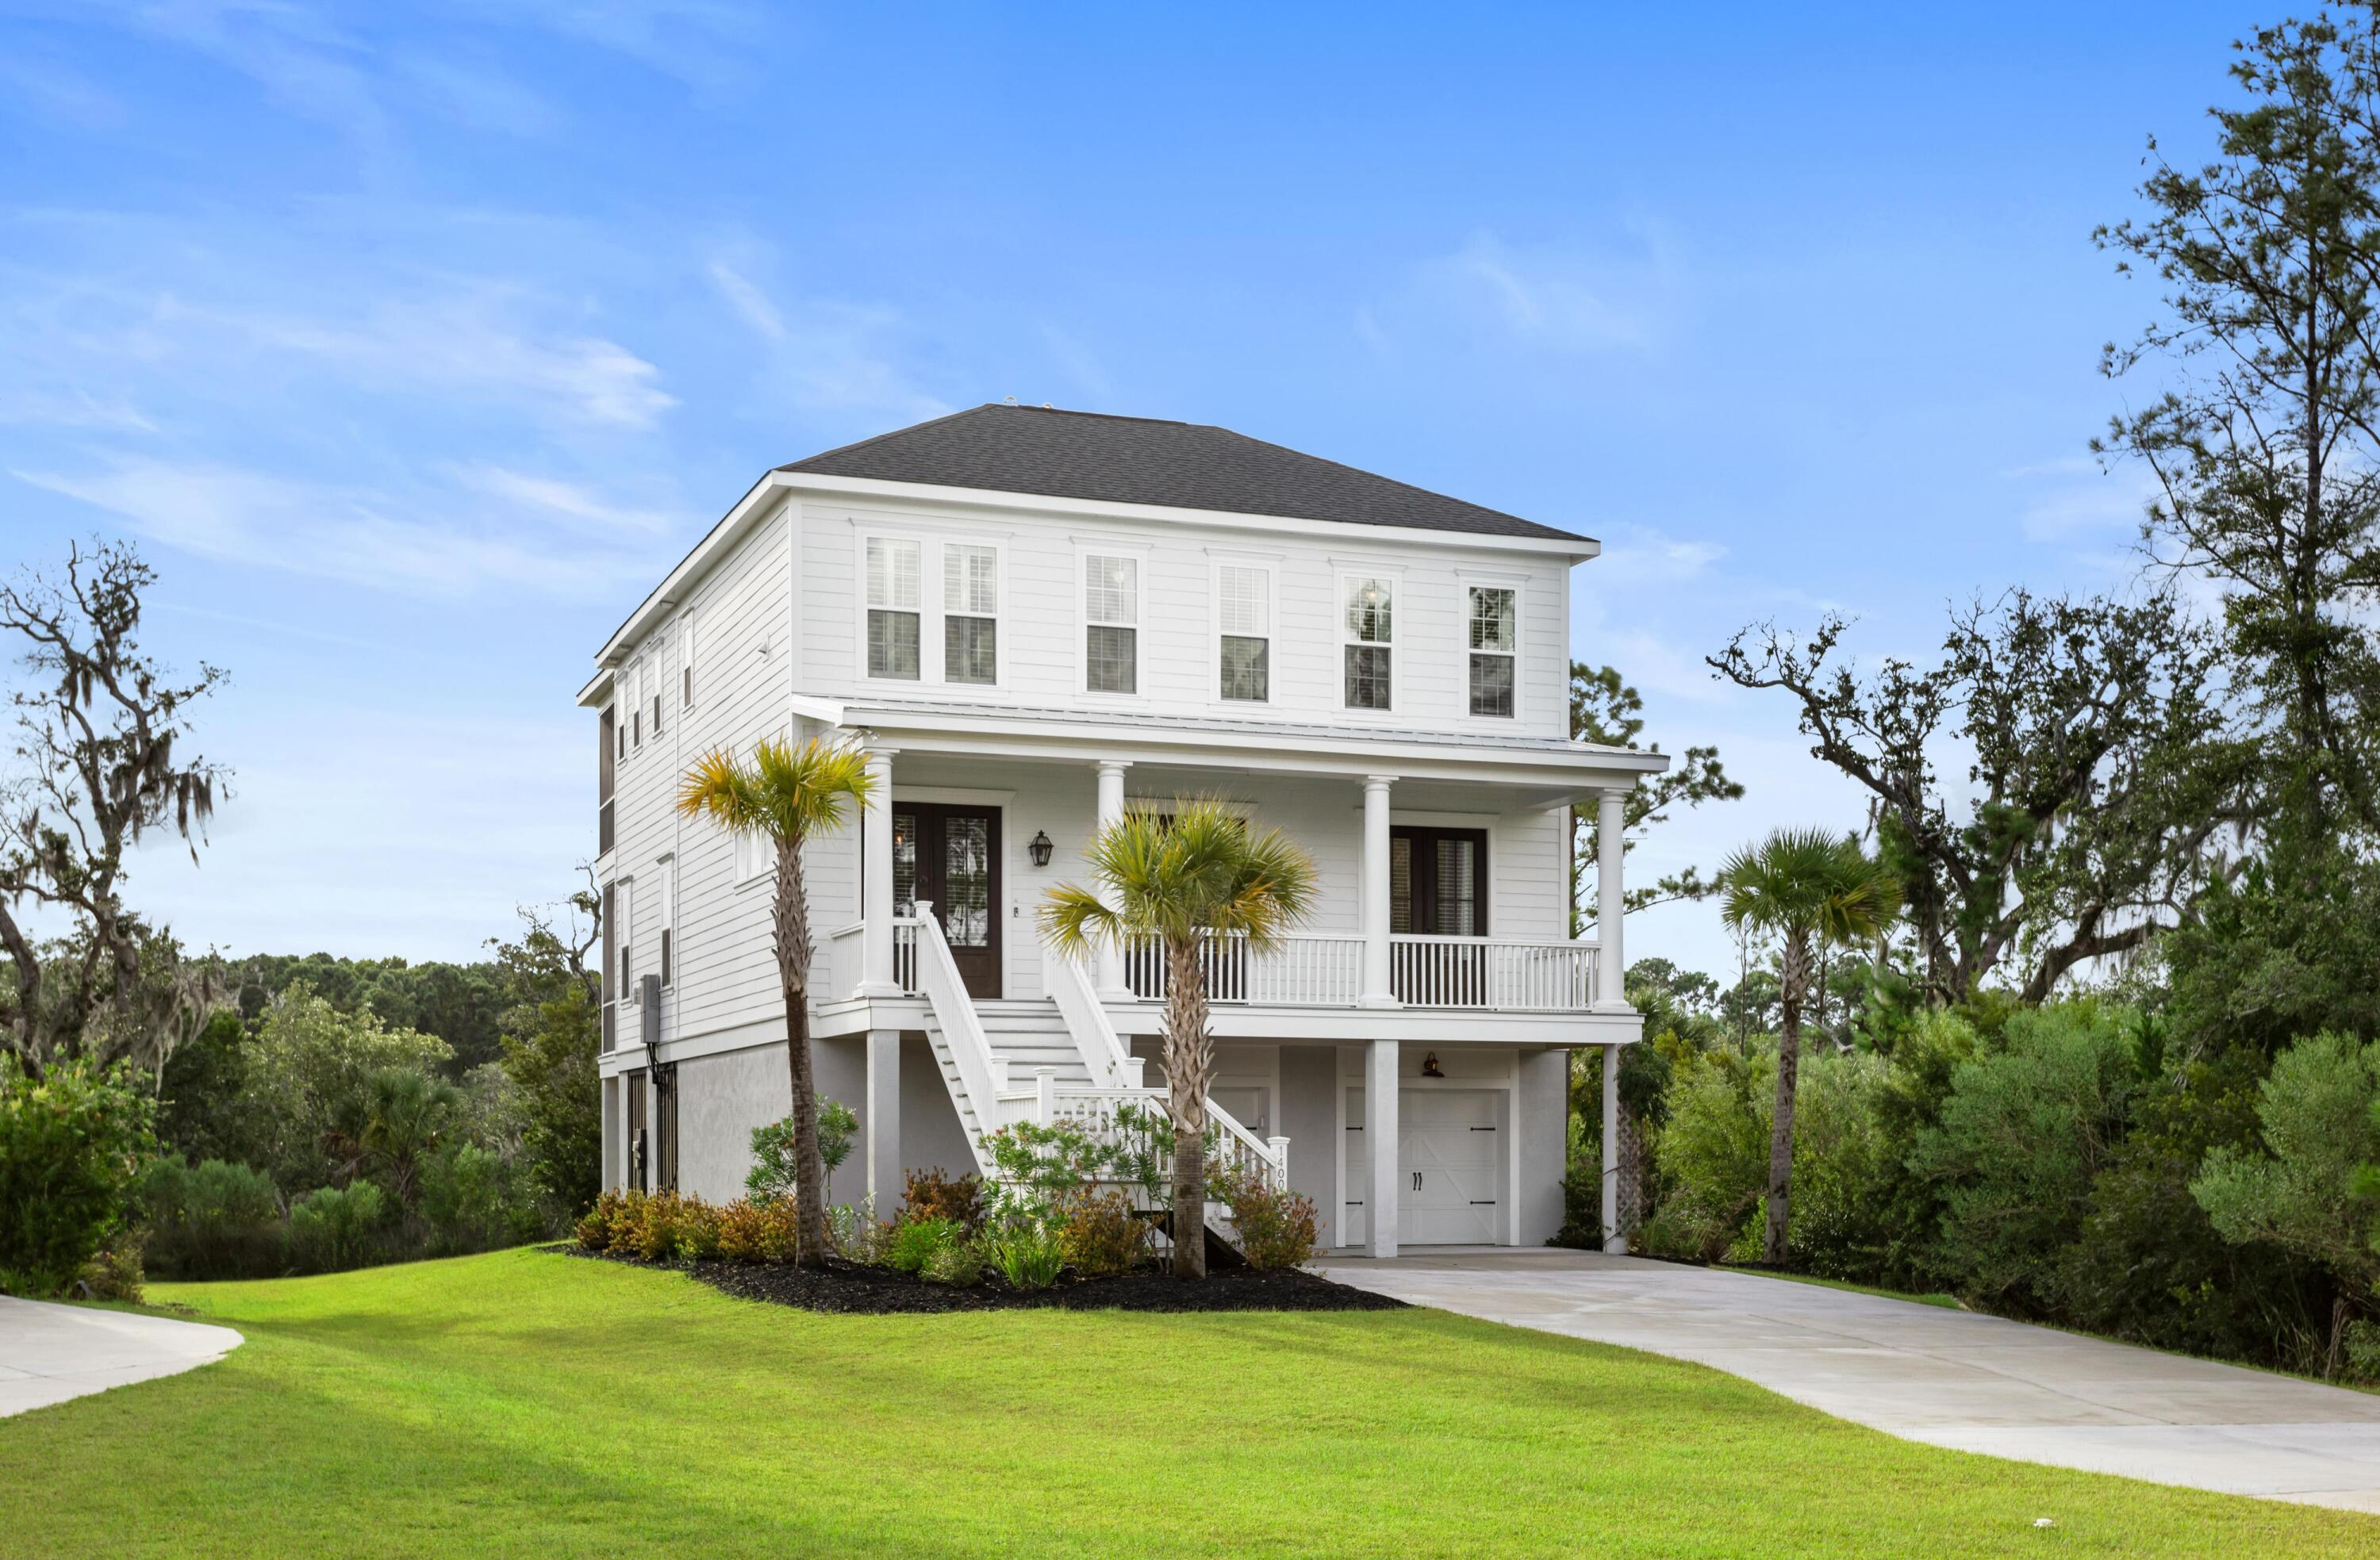 Stratton by the Sound Homes For Sale - 1400 Stratton, Mount Pleasant, SC - 48